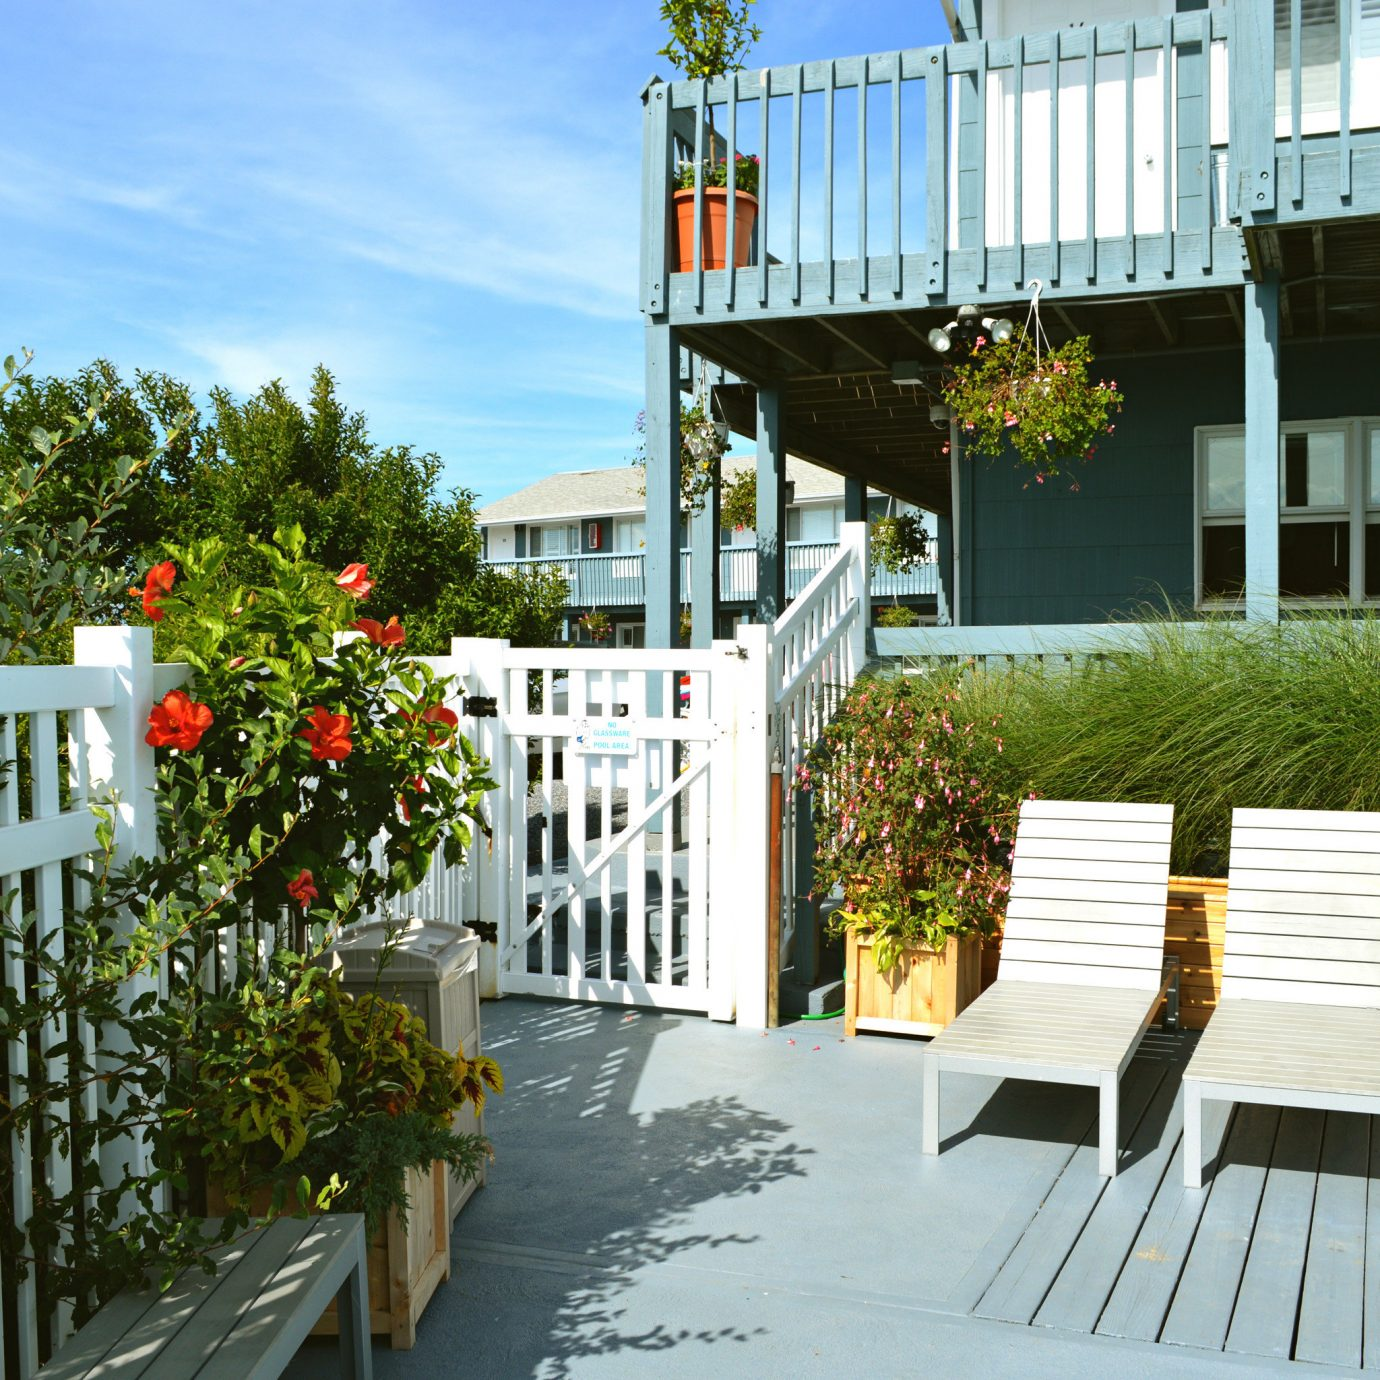 Budget Grounds Resort tree building neighbourhood porch house Architecture residential area home walkway Balcony outdoor structure backyard cottage Courtyard Fence Deck